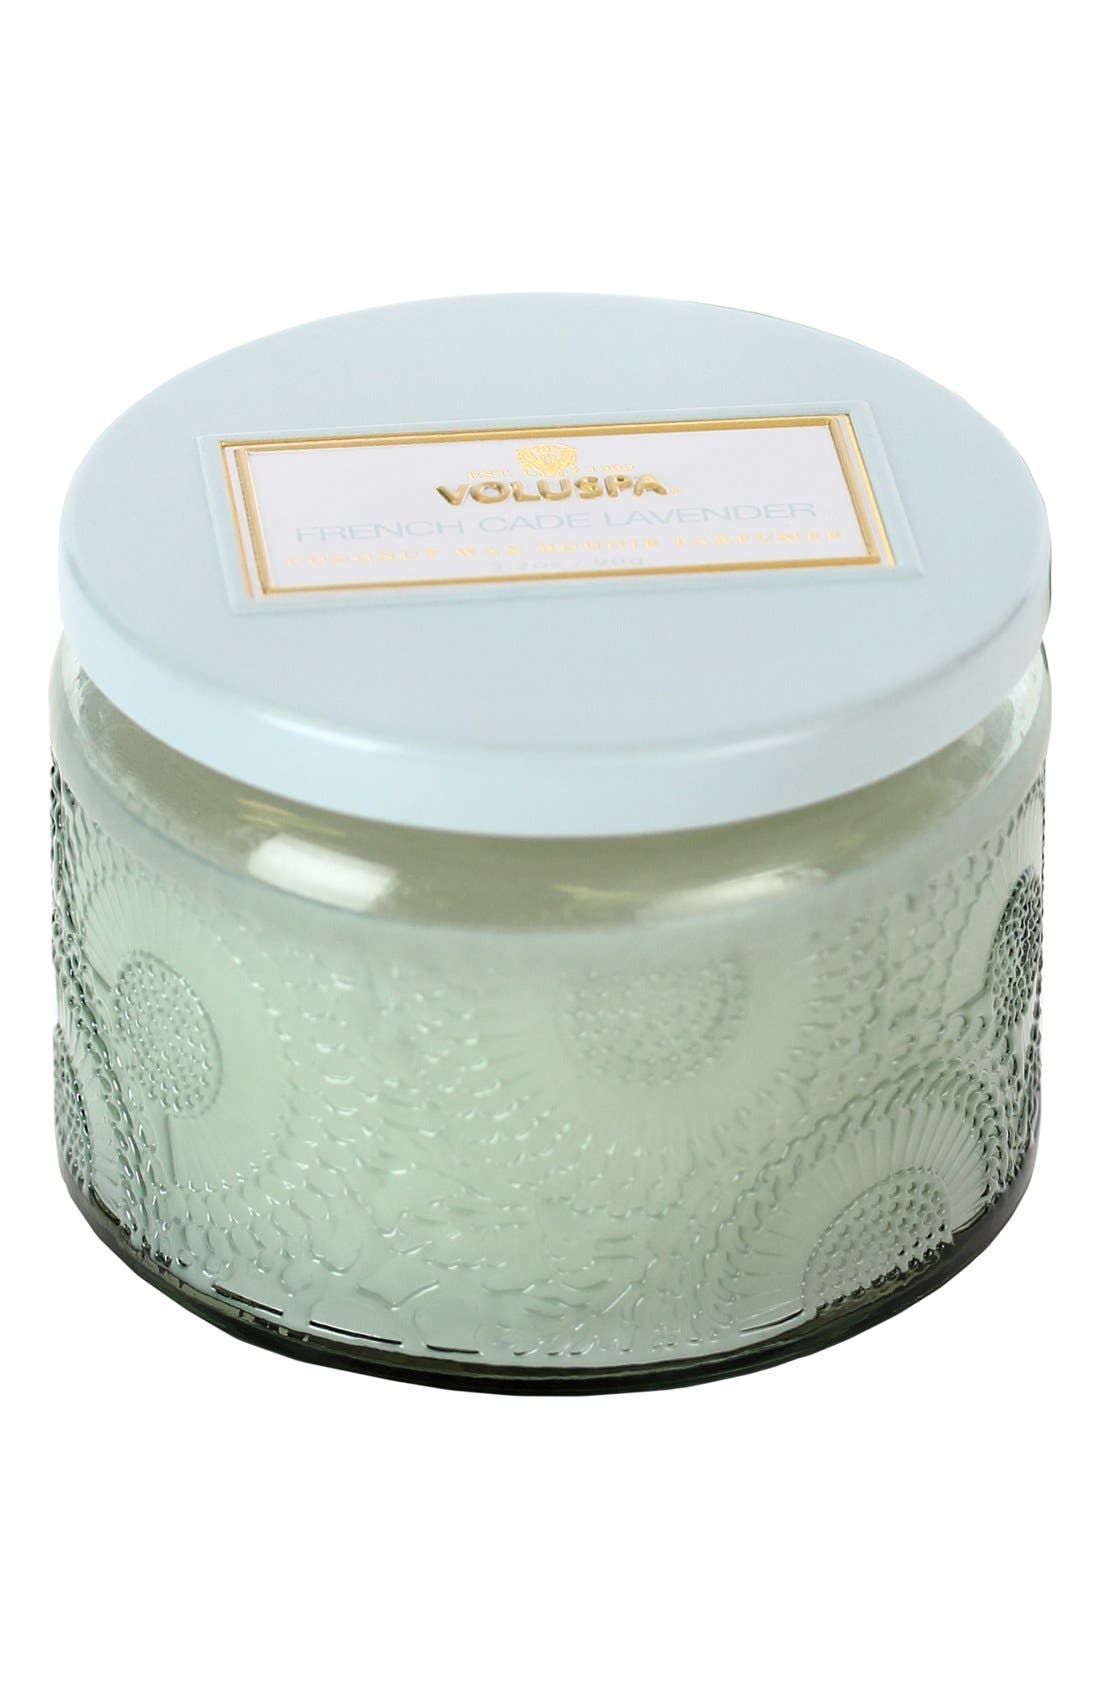 Main Image - Voluspa 'Japonica - French Cade Lavender' Petite Colored Jar Candle